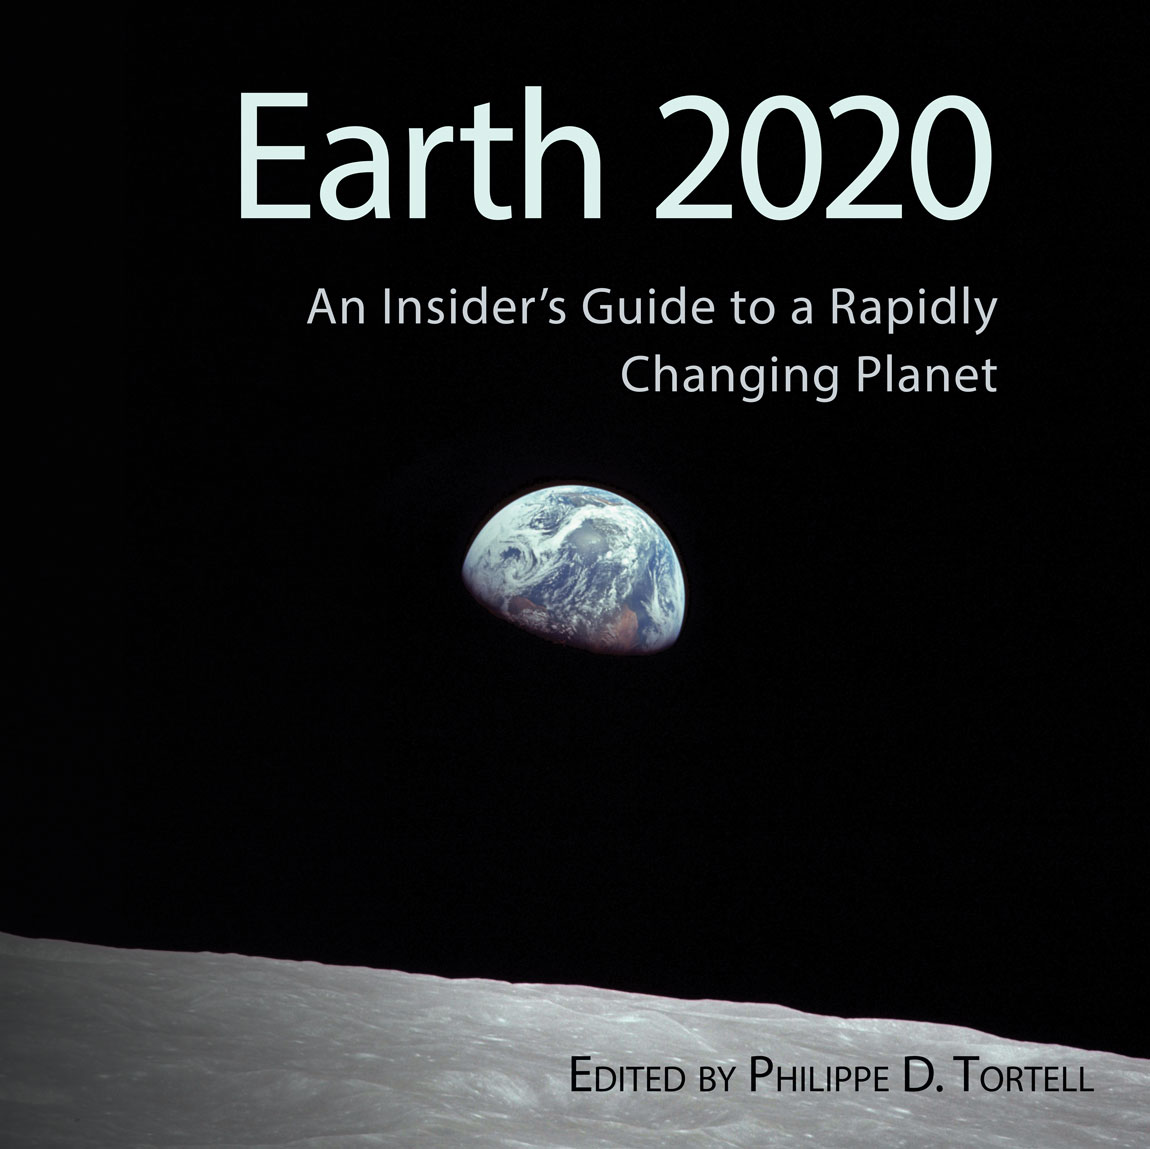 Earth 2020: An Insider's Guide to a Rapidly Changing Planet